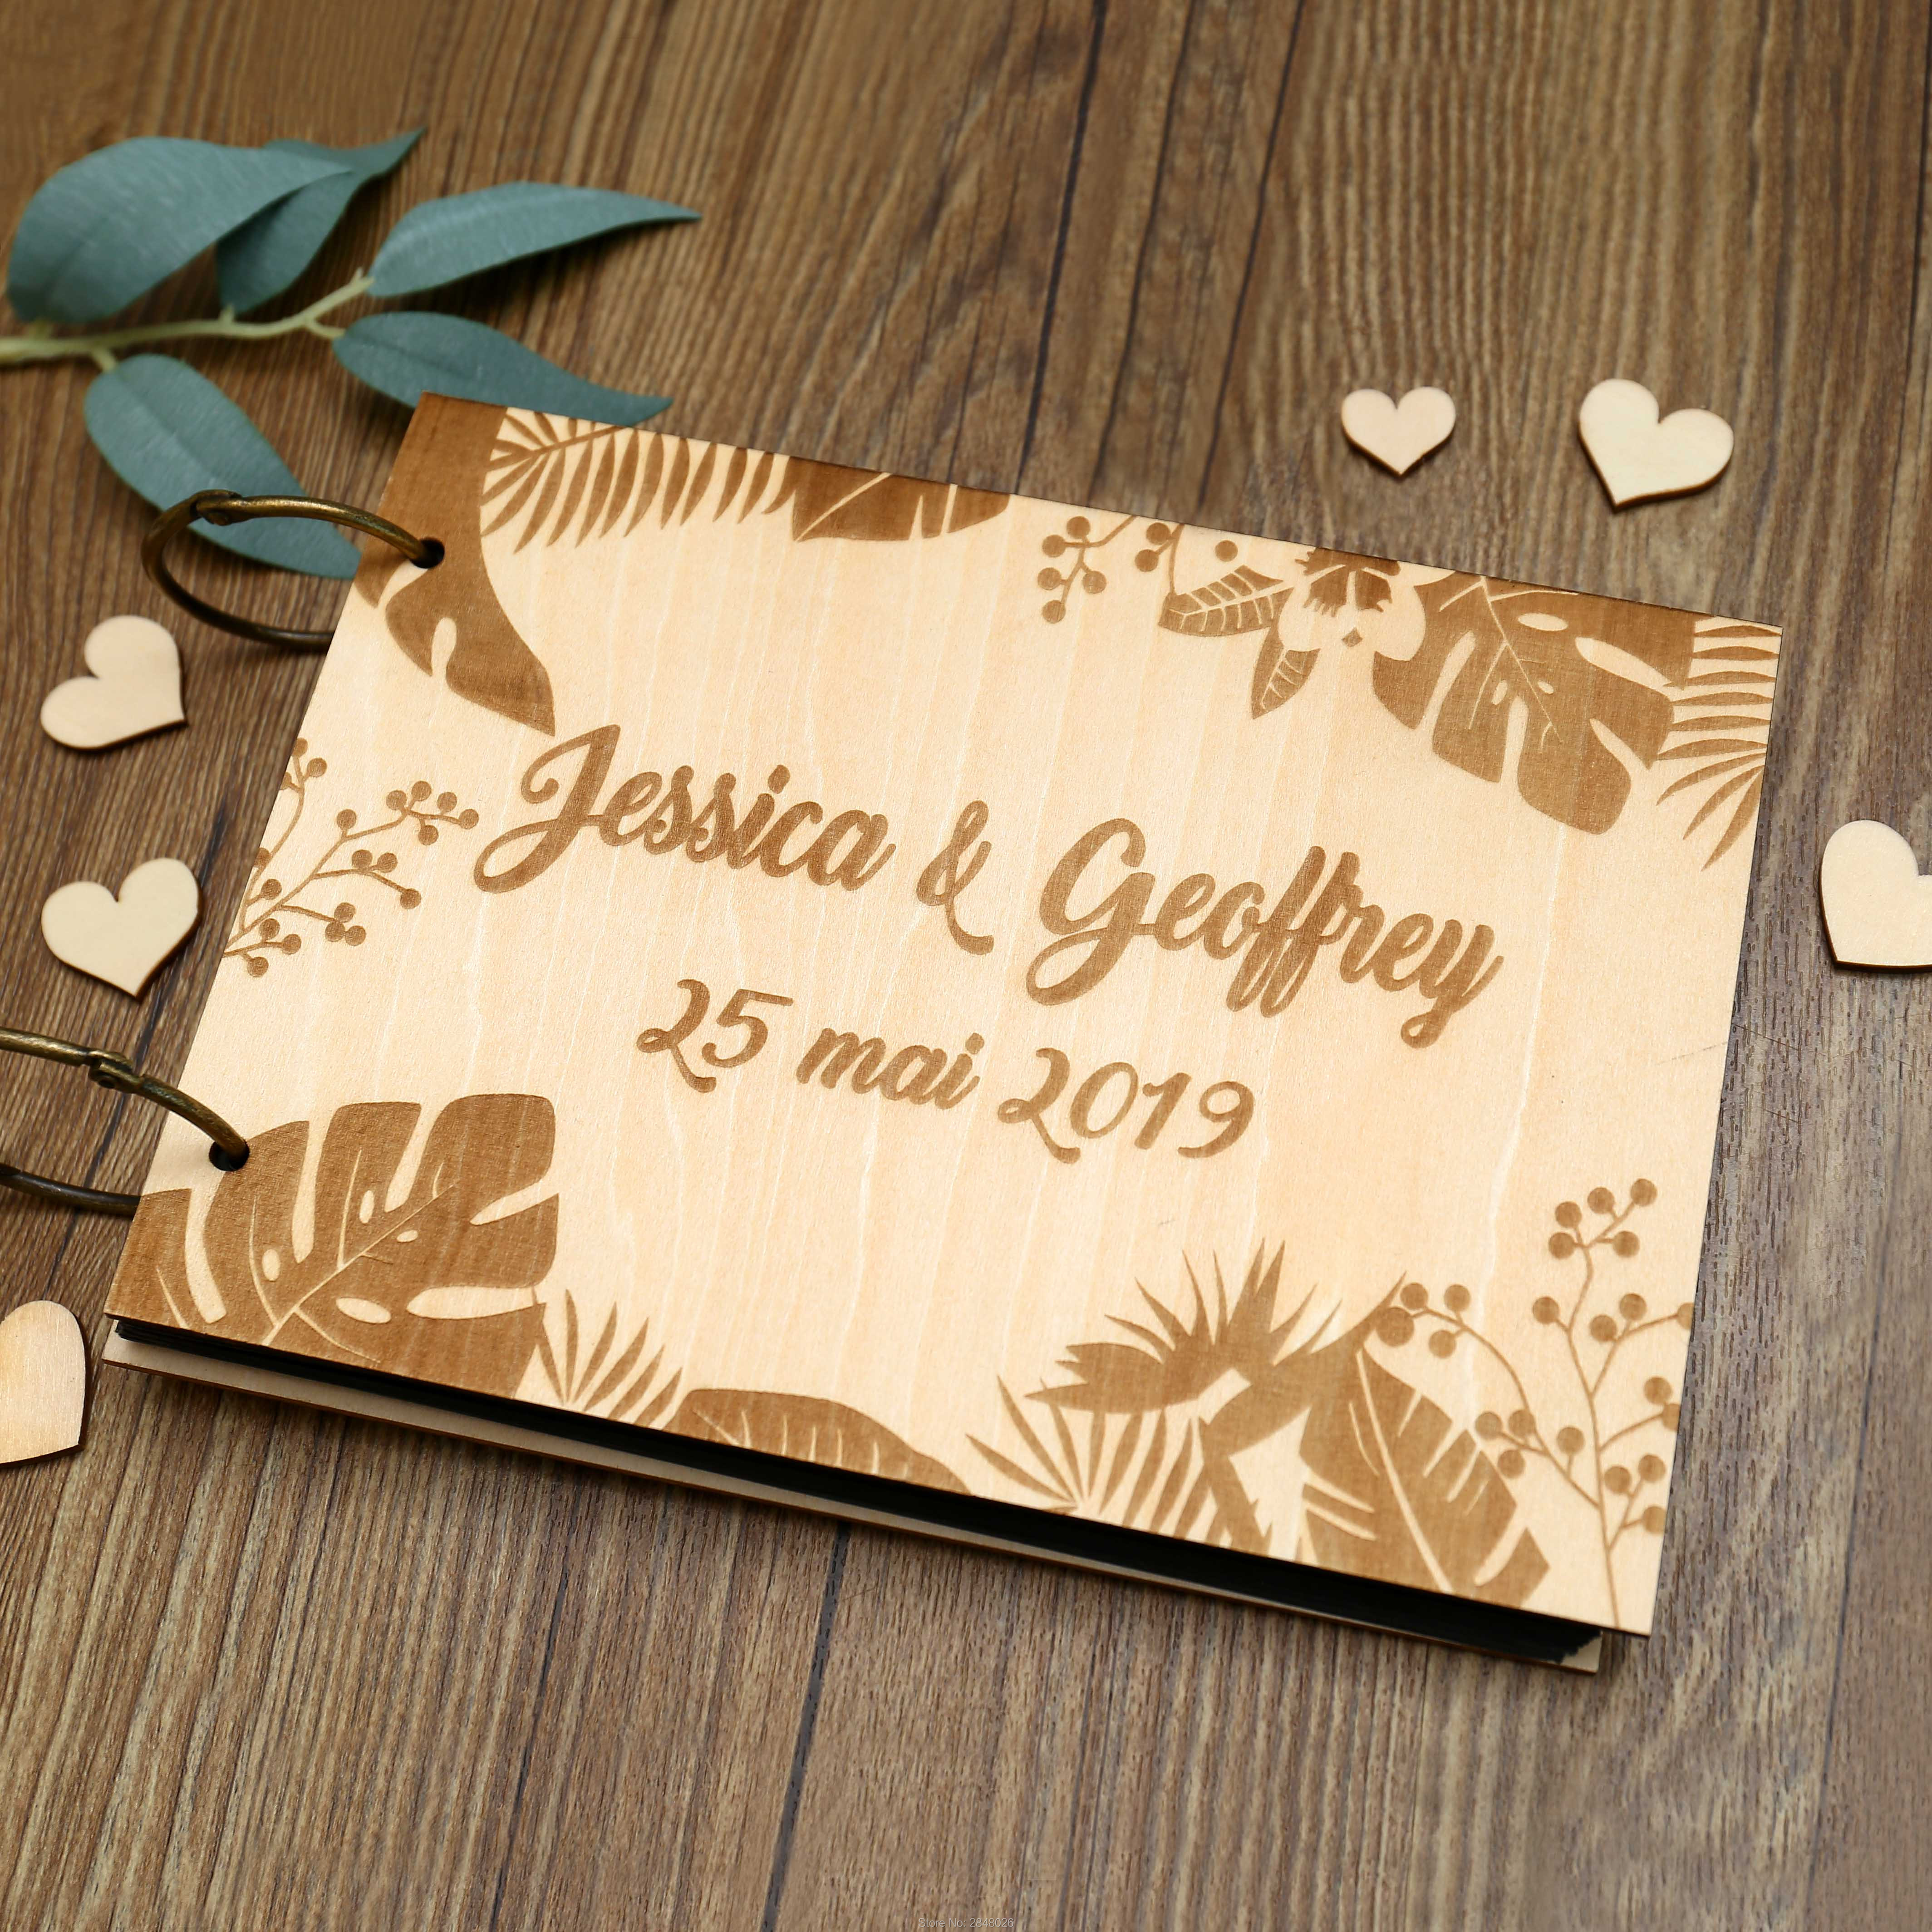 Personalized Wedding Guest Book.Us 12 99 Rustic Personalized Wedding Guest Book Custom Tropical Wooden Wedding Guestbook Personalized Summer Photo Album In Signature Guest Books